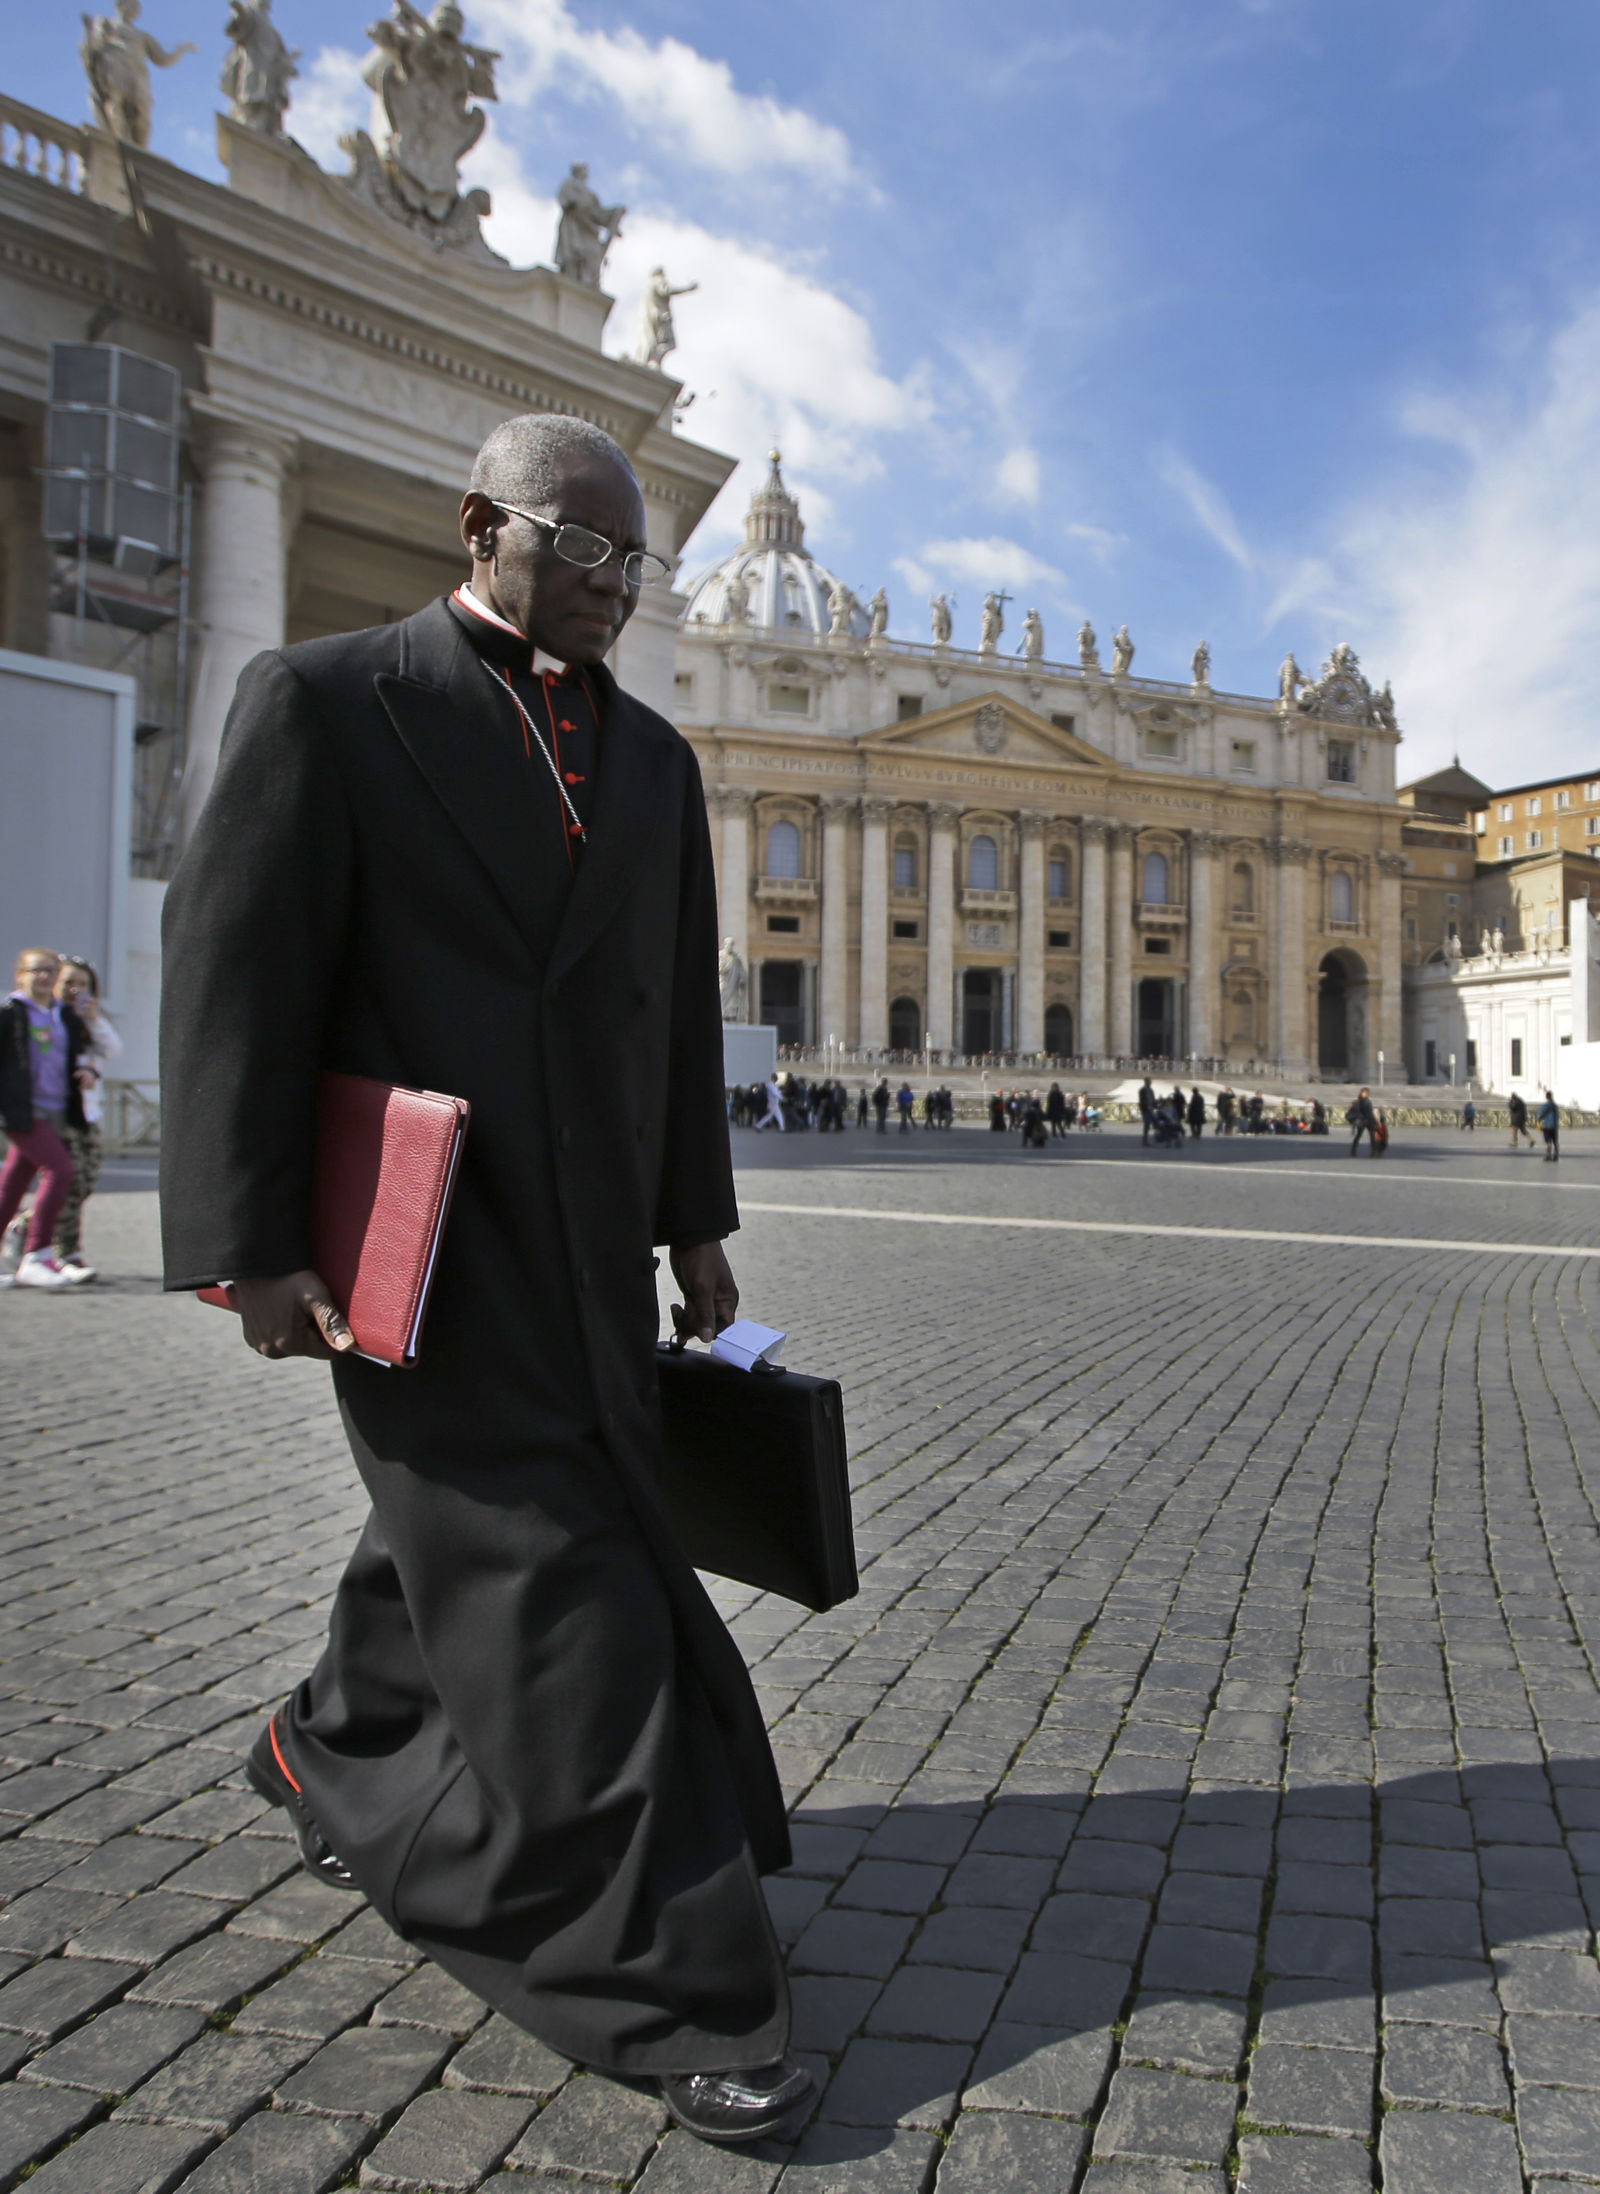 FILE - In this Monday, March 4, 2013 file photo, Cardinal Robert Sarah, of Guinea, walks in St. Peter's Square after attending a cardinals' meeting, at the Vatican.{ } (AP Photo/Andrew Medichini, File)